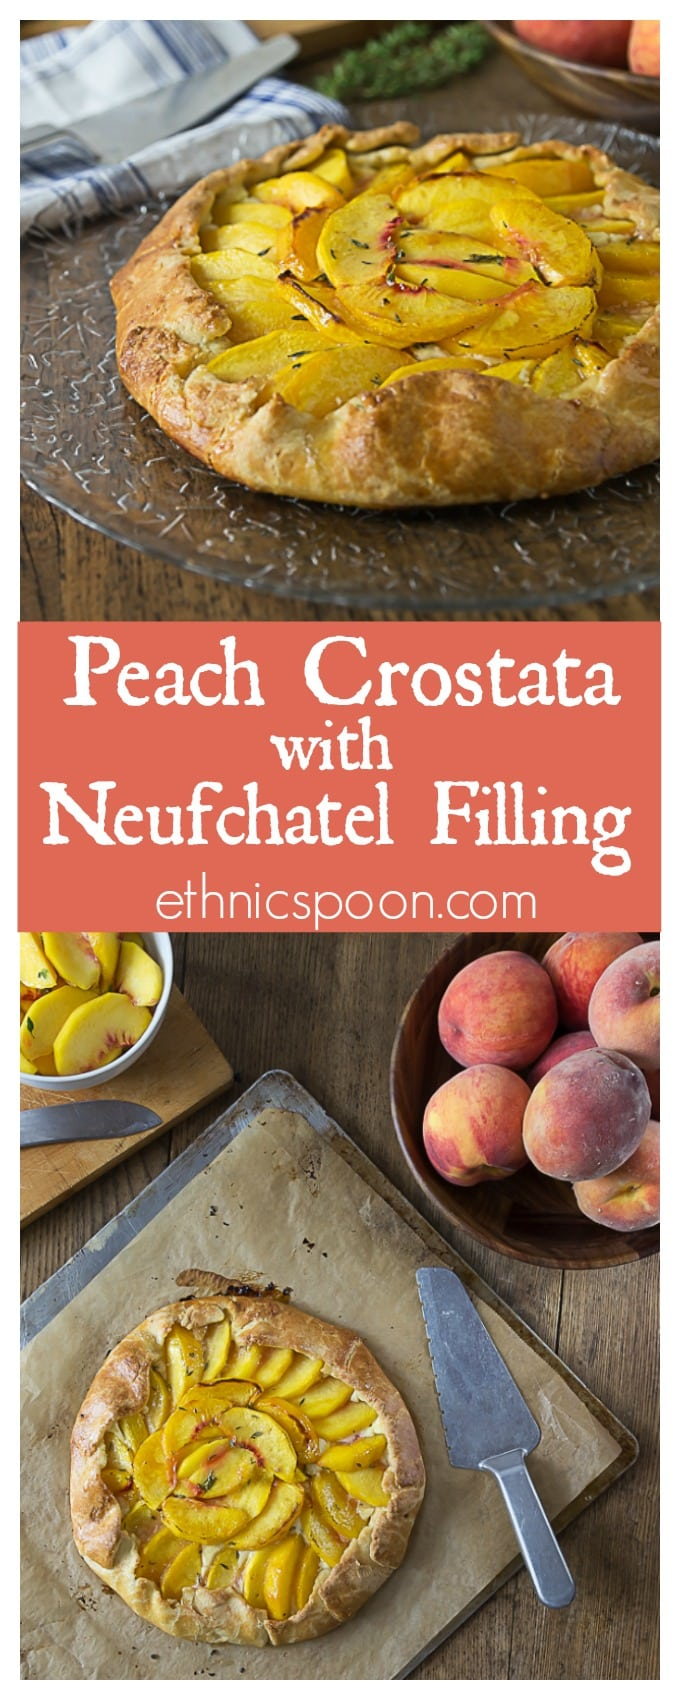 Simple and delicious! A rustic dessert that is so simple to make! Fresh peach crostata with a creamy Neufchatel filling! It one of my favorite farm to table desserts! | ethnicspoon.com